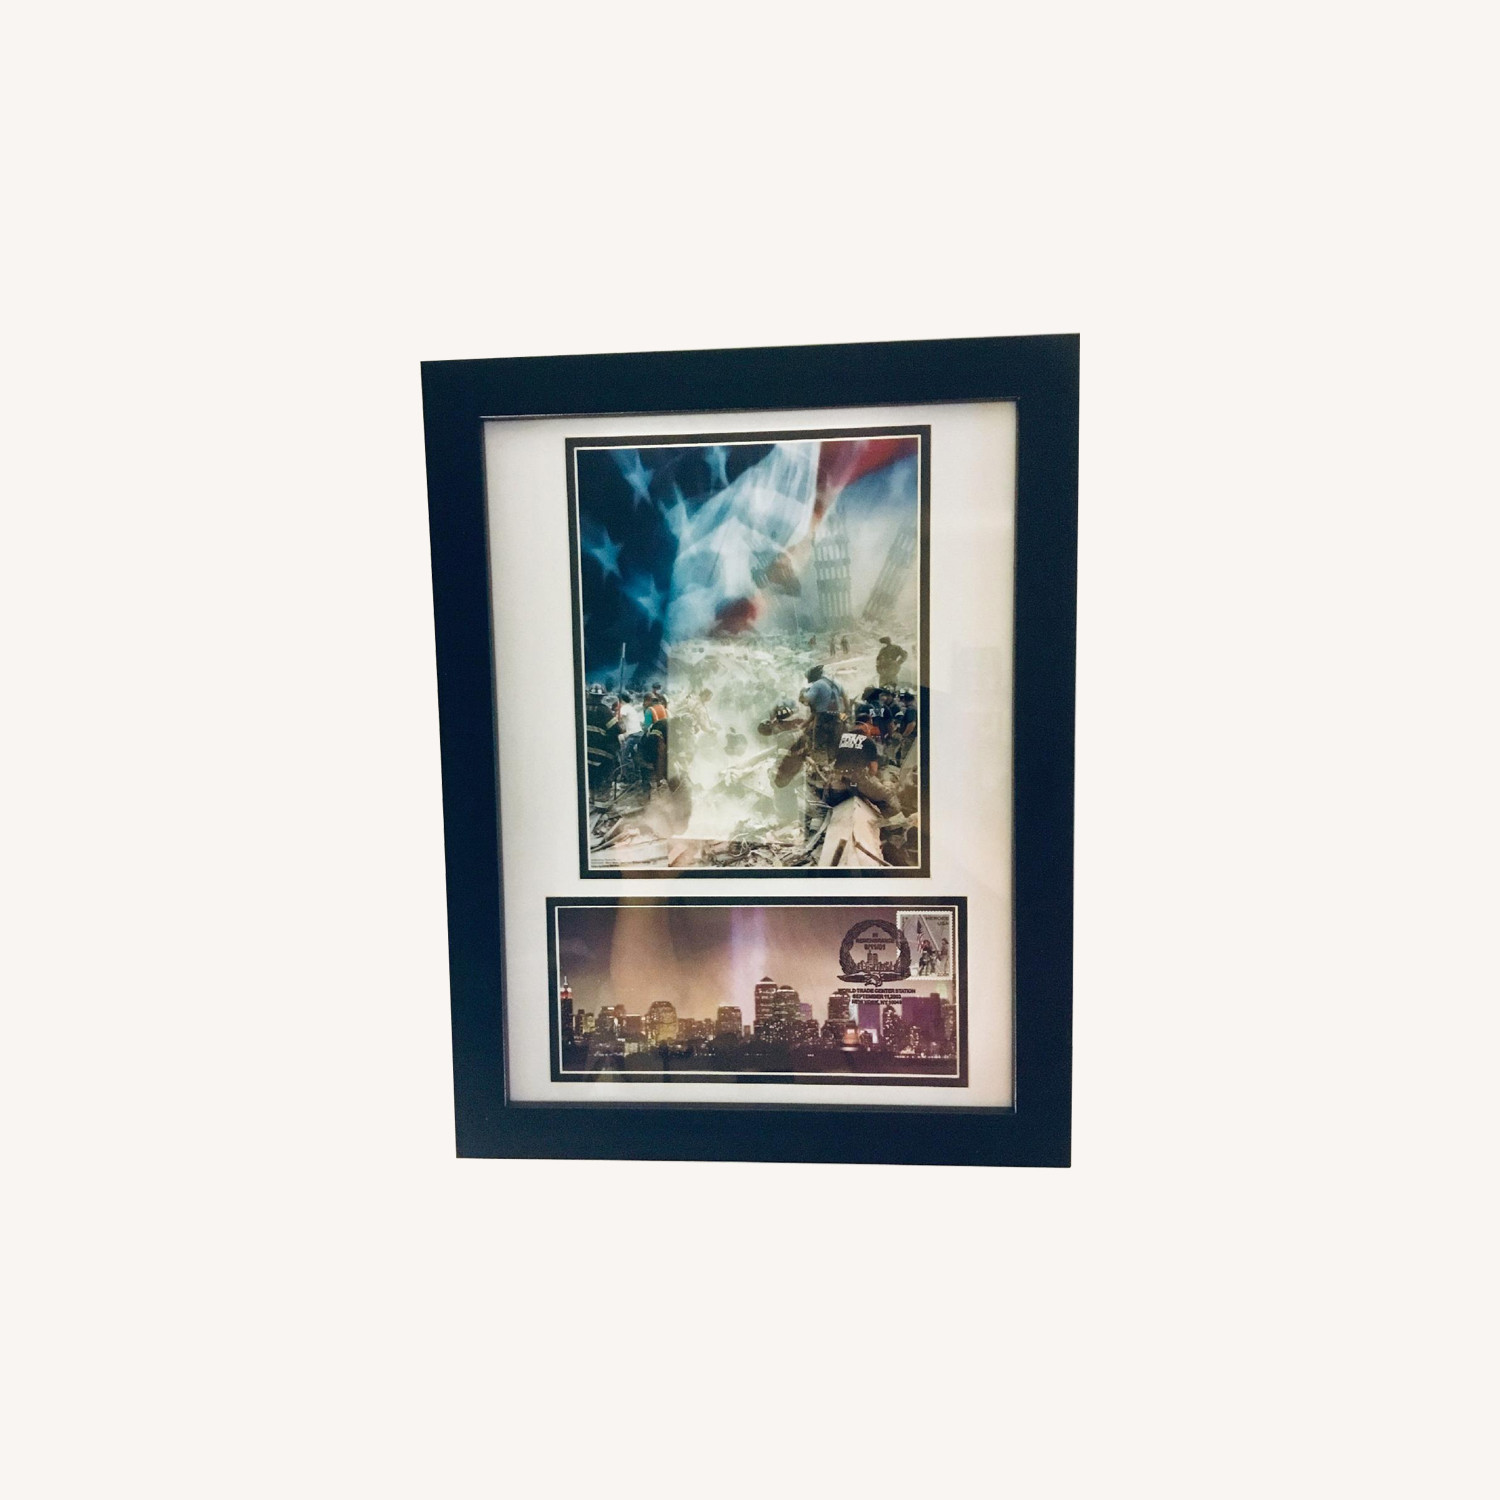 Framed Historic Photos of 9/11 w/ Tower Lights/Heroes Stamp